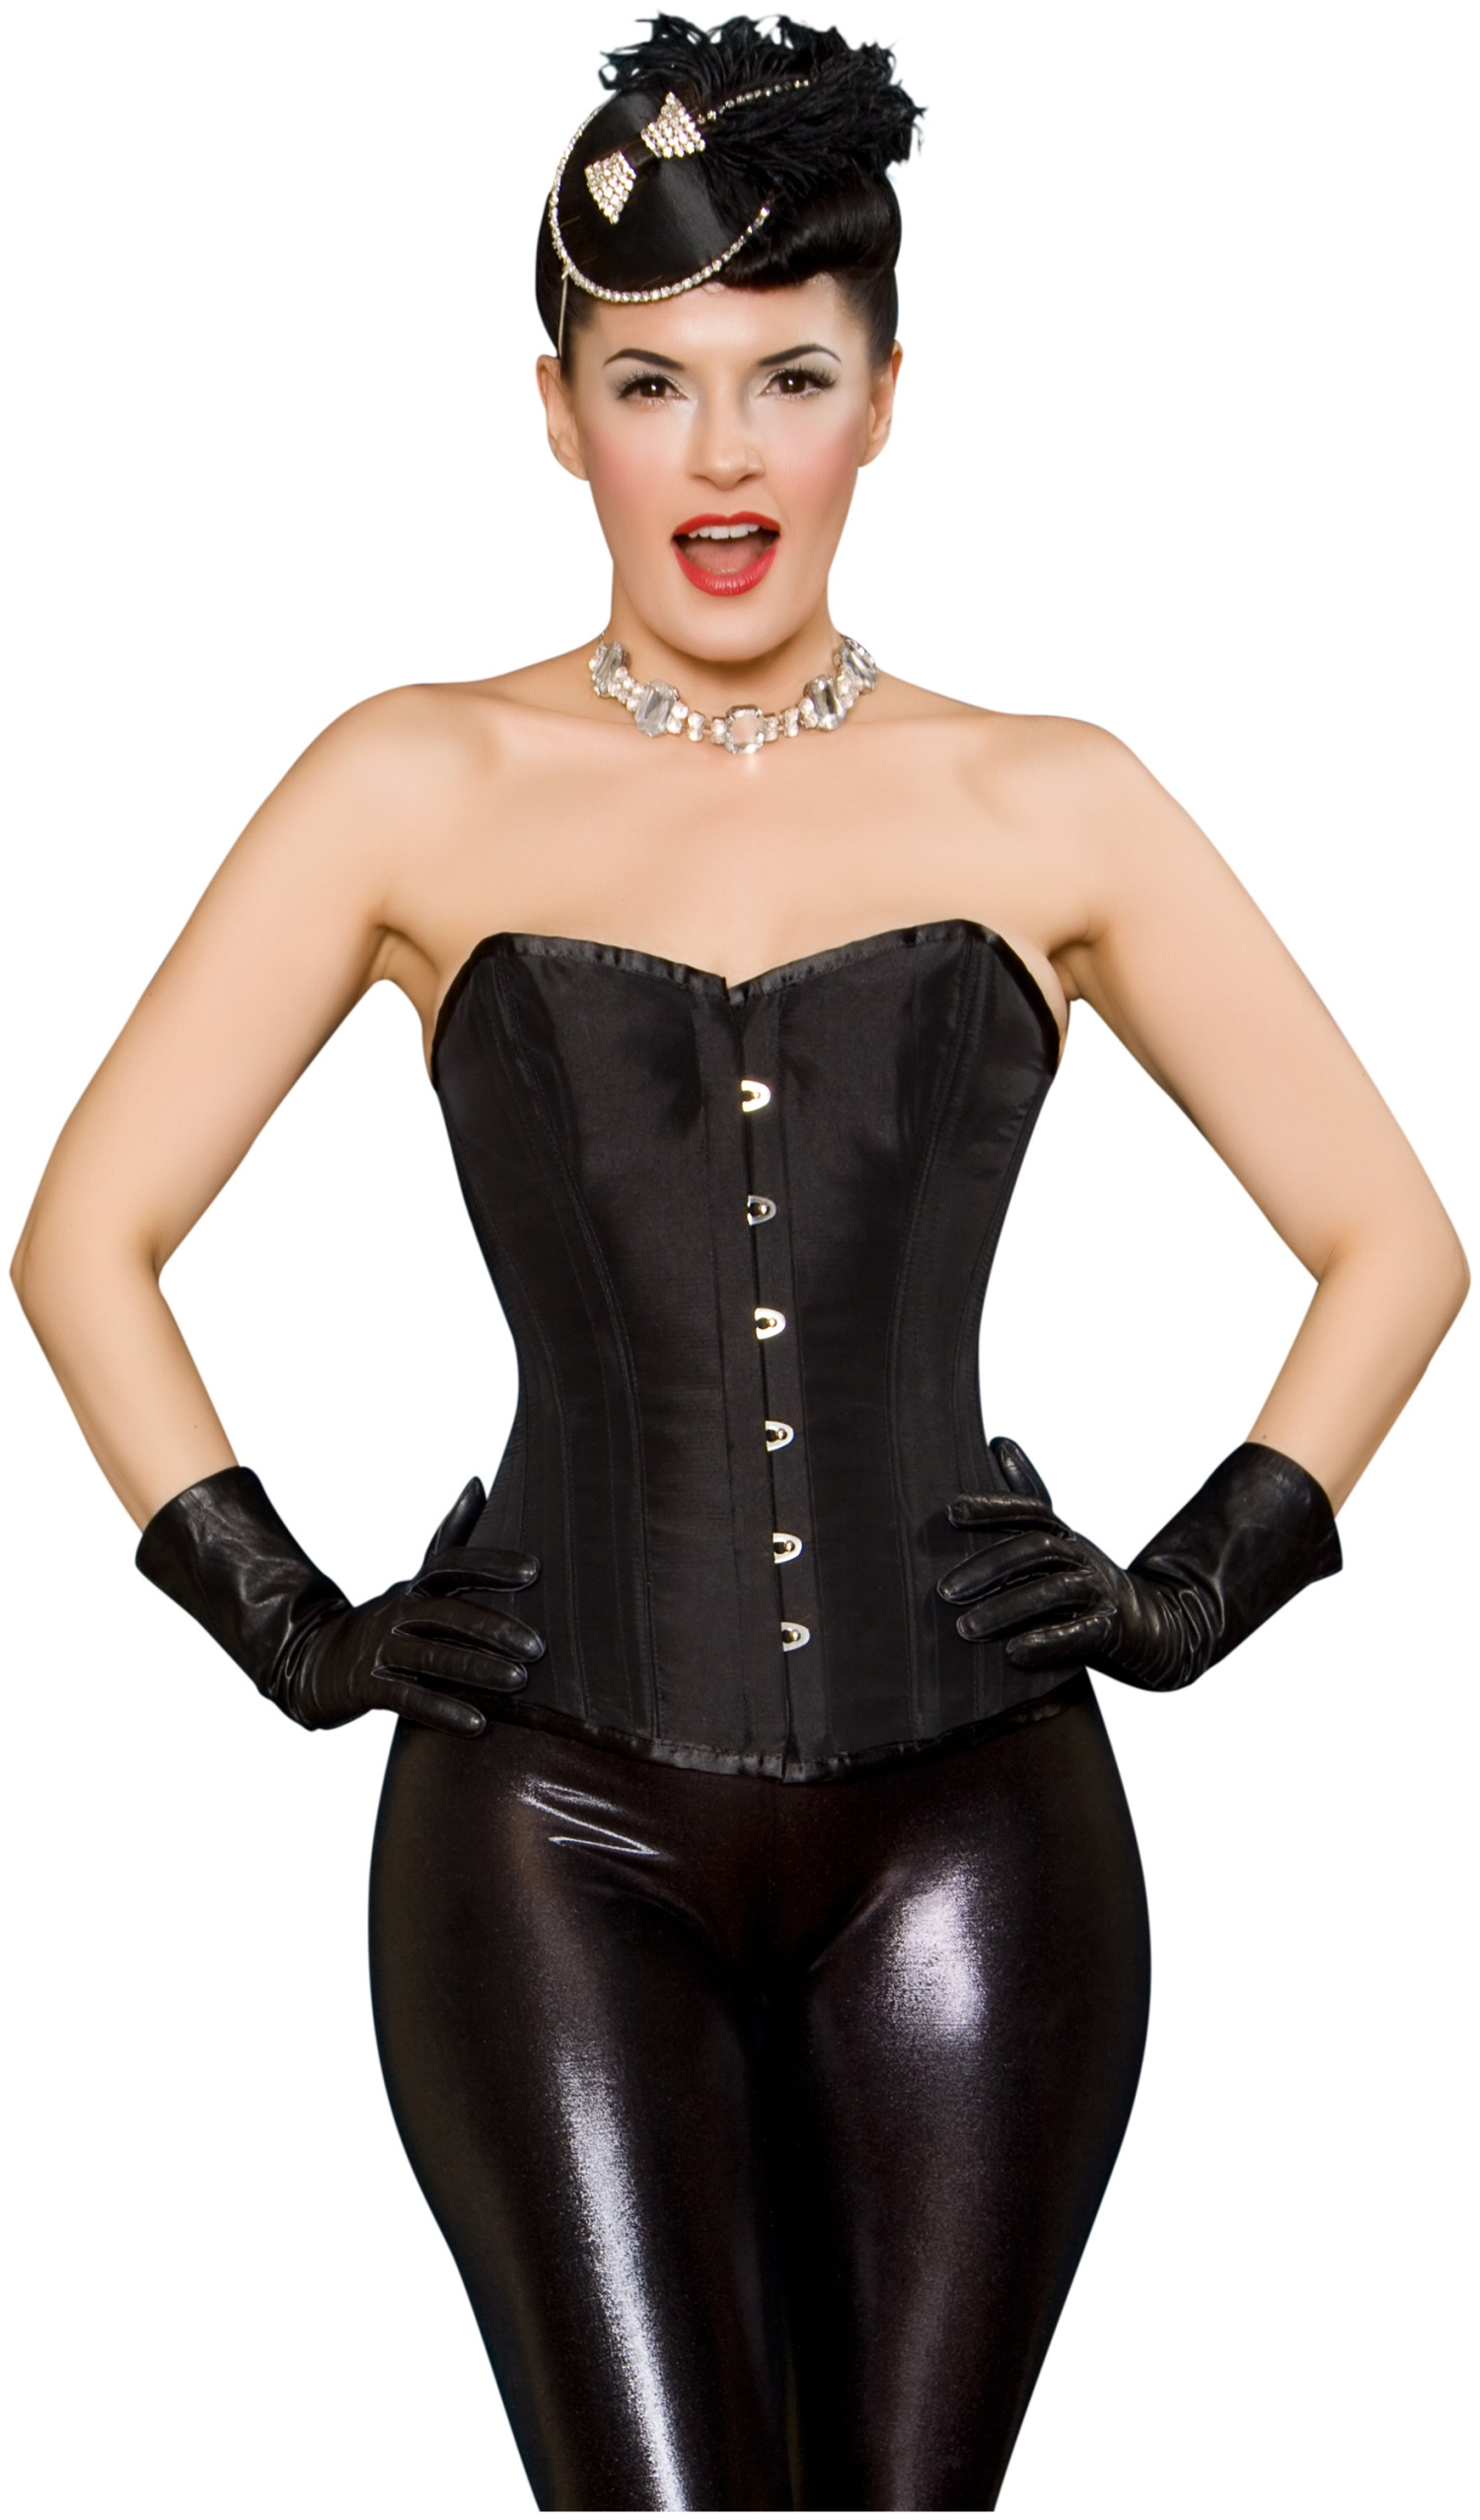 Lush Black Tafetta Steel Boned Overbust Corset By Playgirl